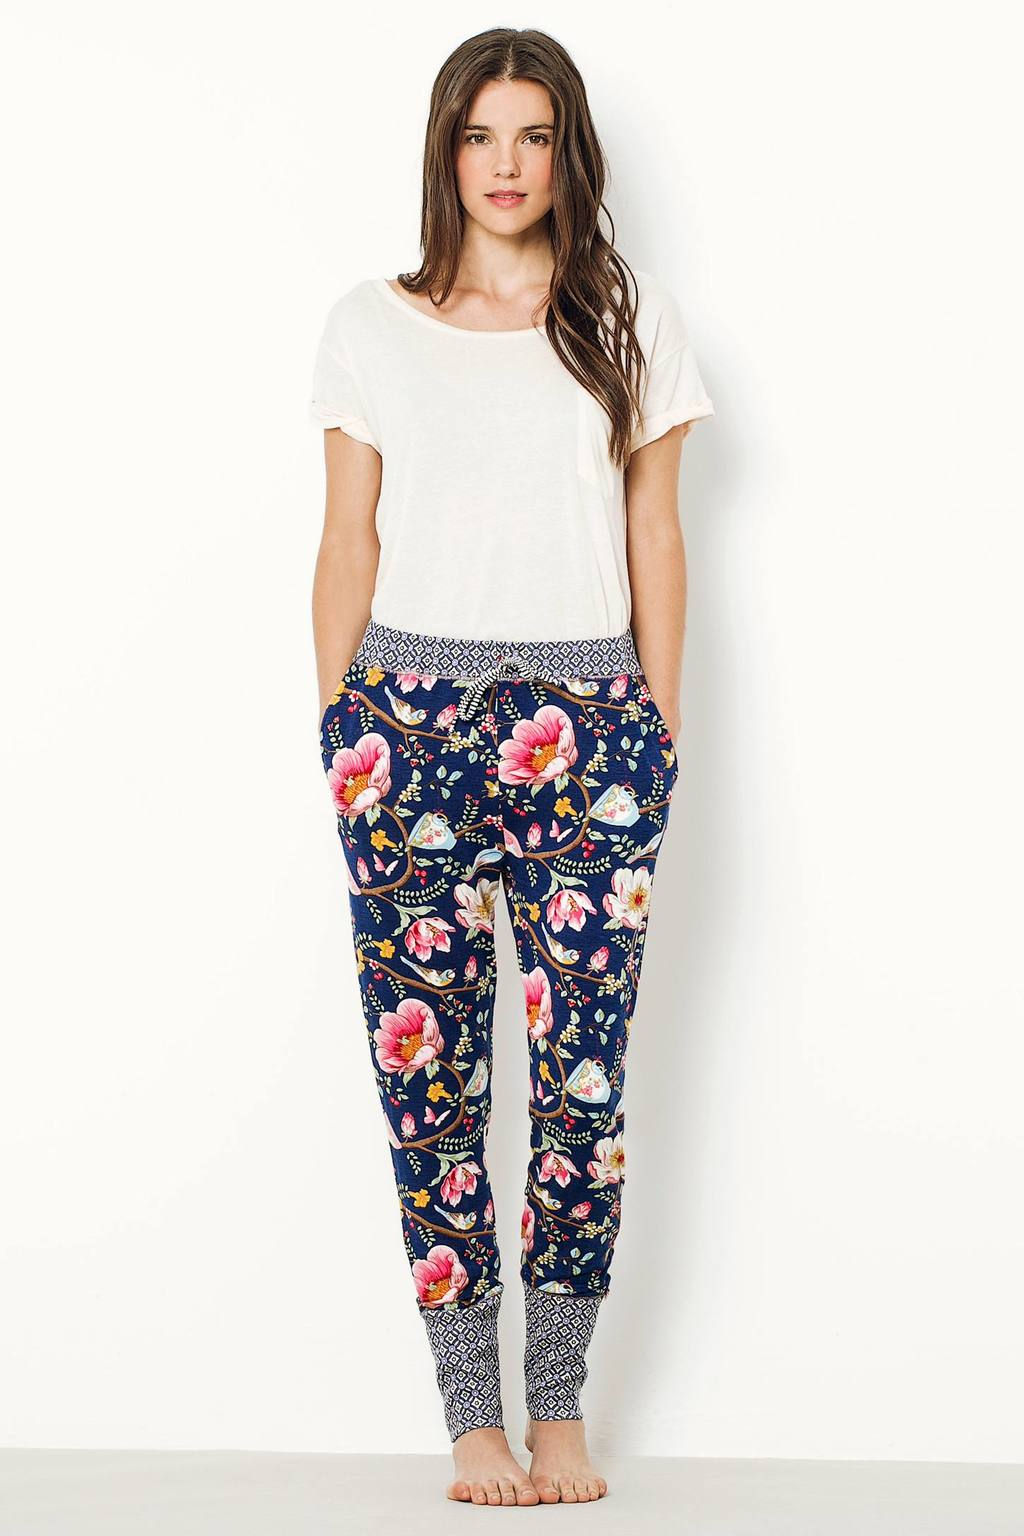 Briar Floral Pyjama Bottoms, Blue - length: standard; style: harem/slouch; waist: mid/regular rise; secondary colour: hot pink; predominant colour: navy; occasions: casual; fibres: cotton - stretch; fit: tapered; pattern type: fabric; pattern: florals; texture group: jersey - stretchy/drapey; multicoloured: multicoloured; season: a/w 2016; wardrobe: highlight